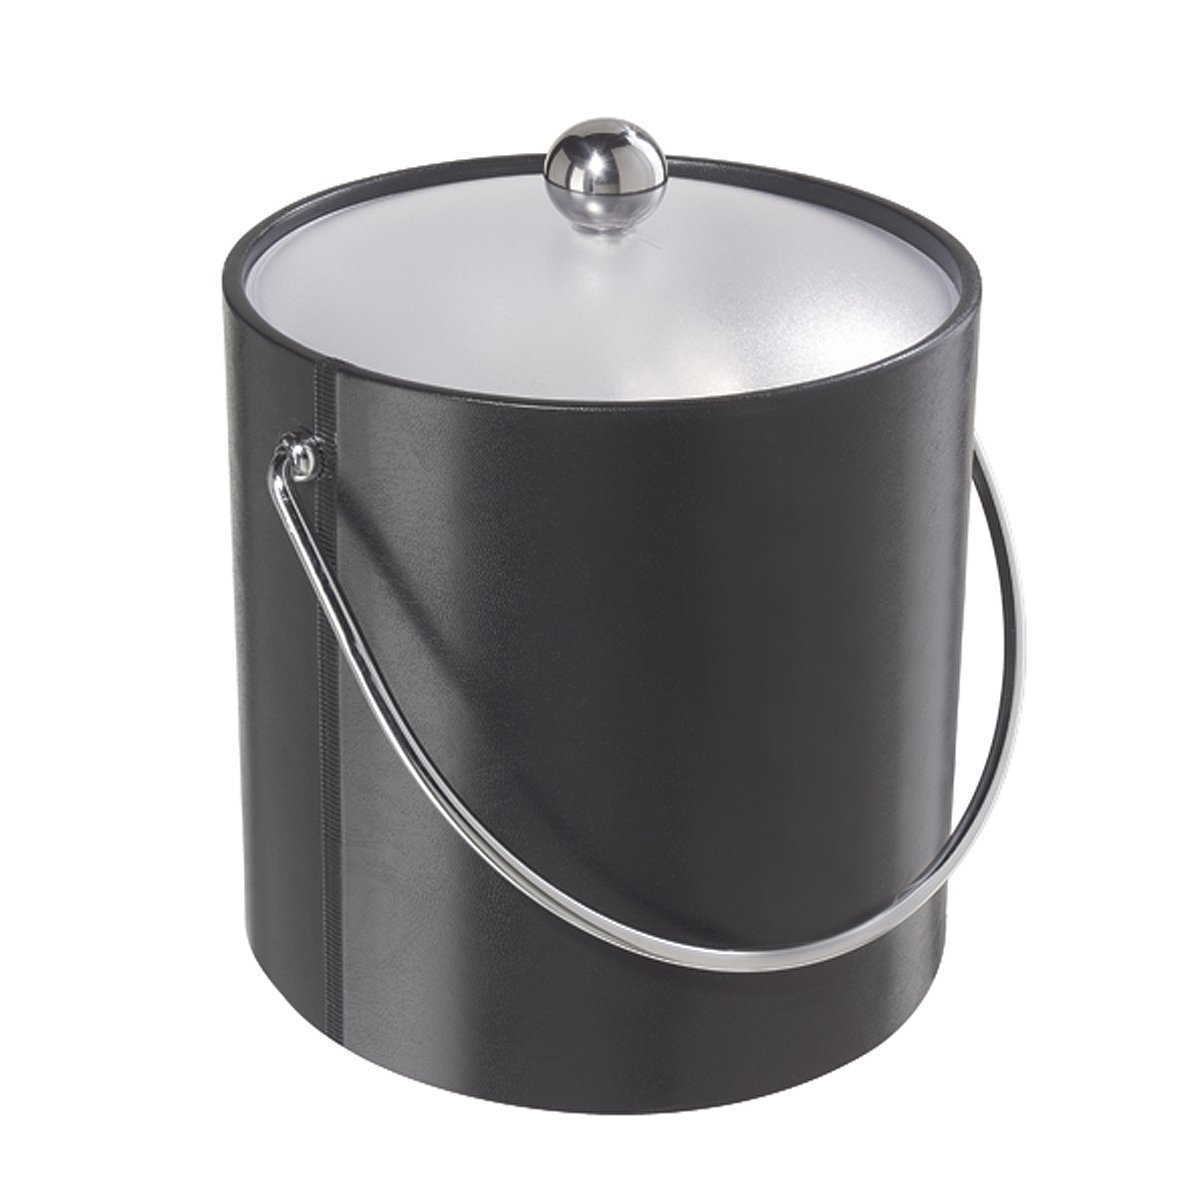 Oggi 7310.3 Vinyl Ice Bucket, Black